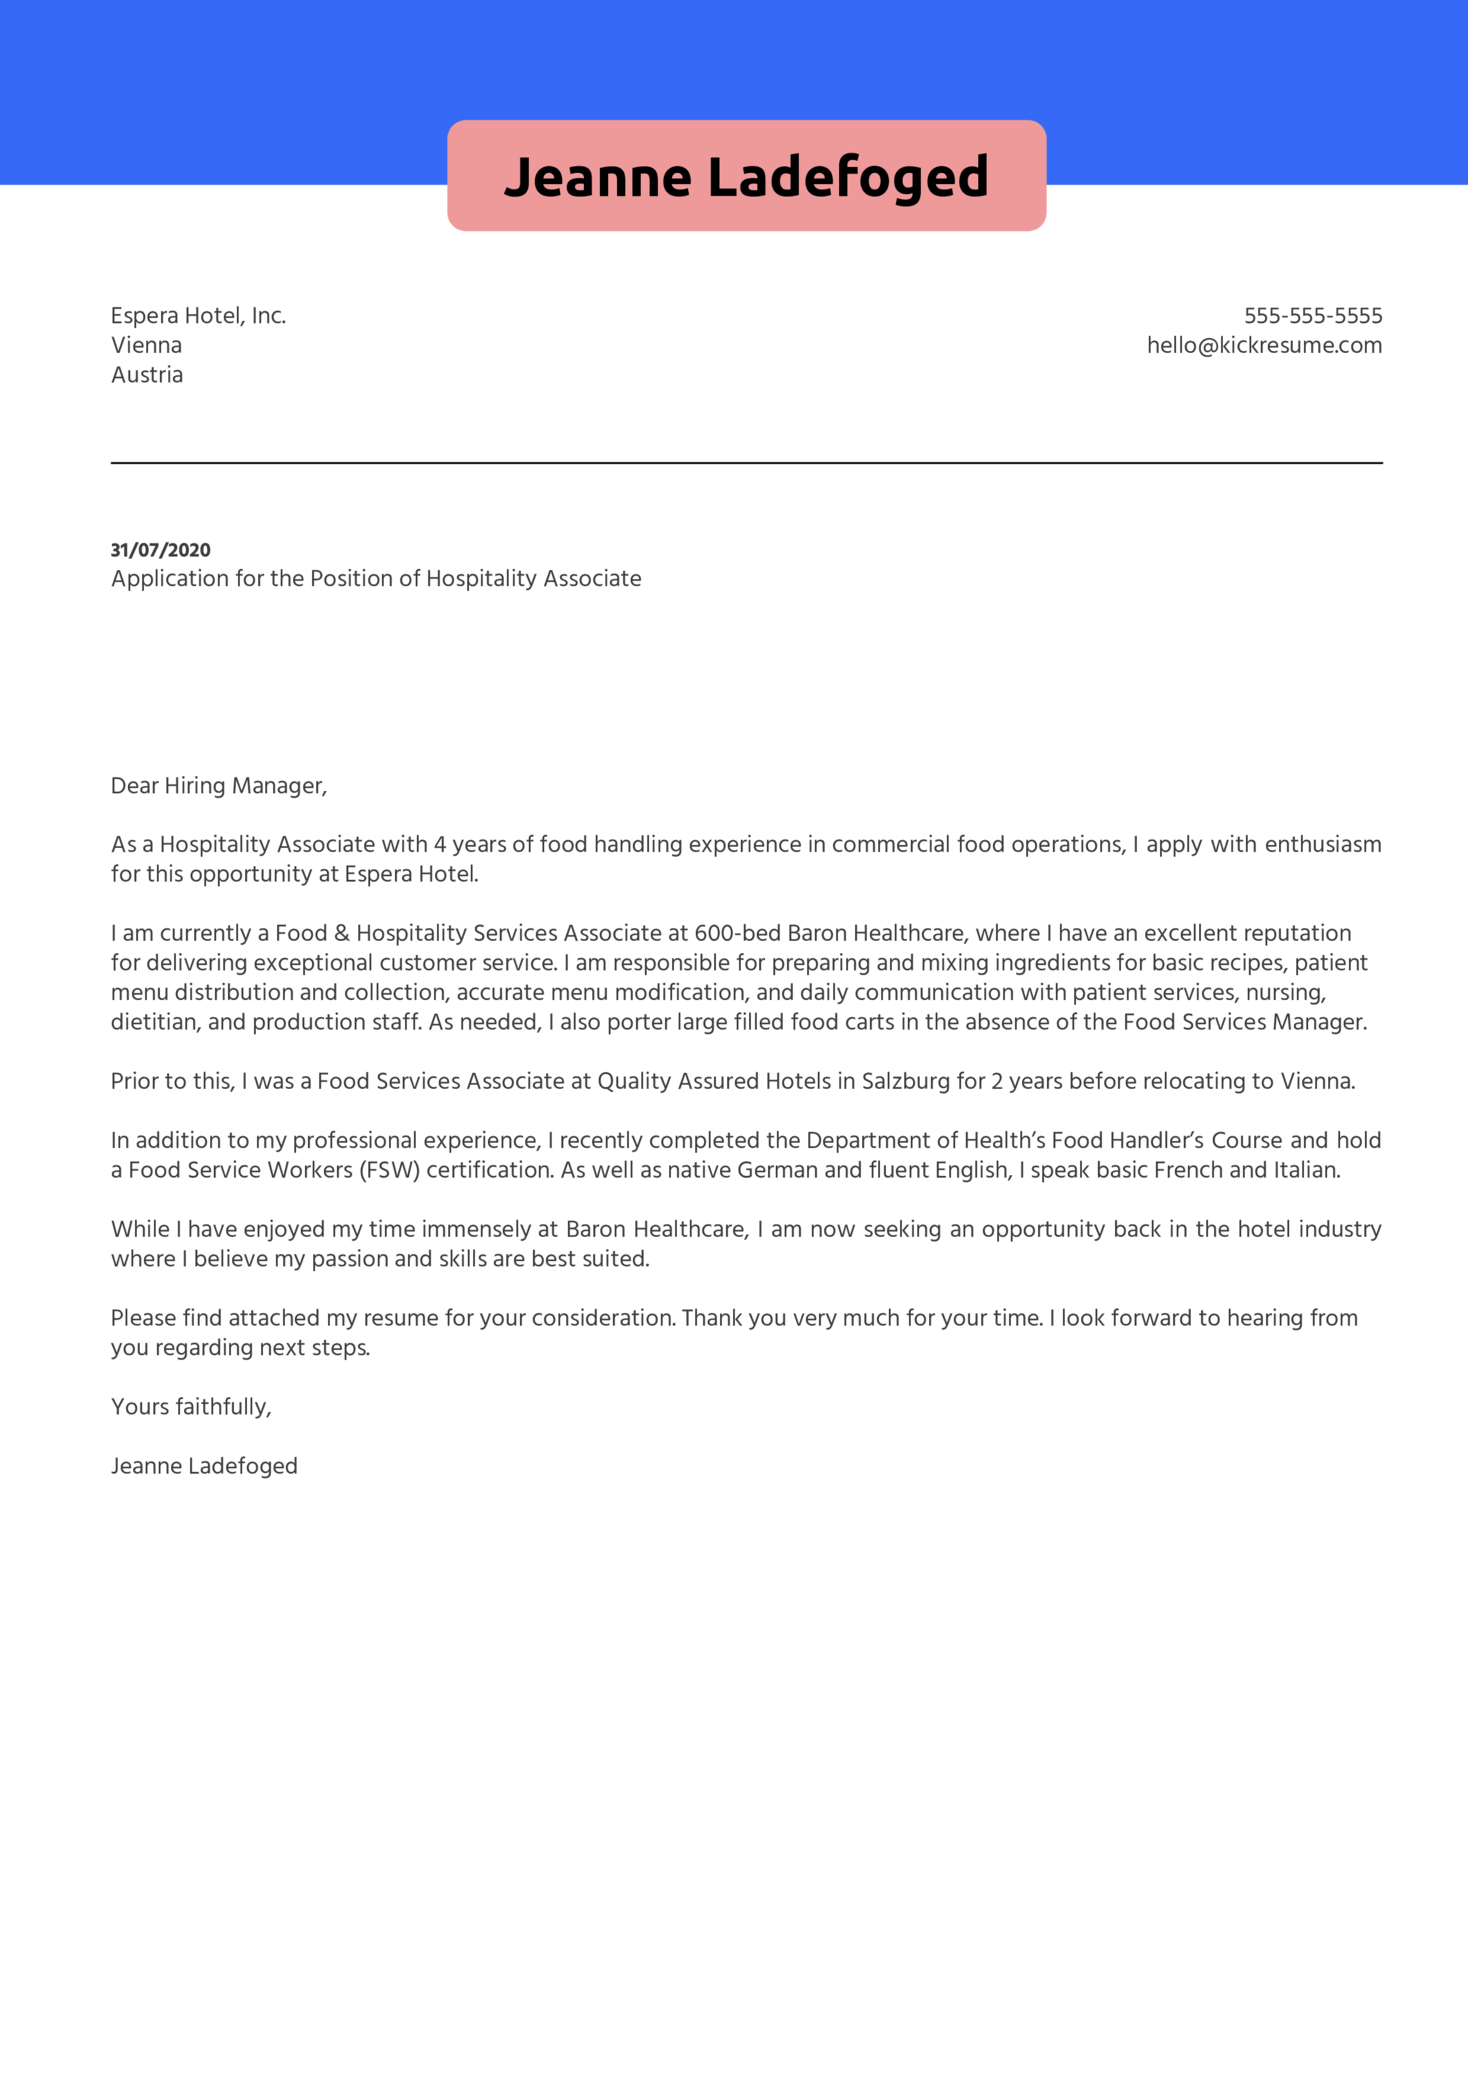 Hospitality Associate Cover Letter Example